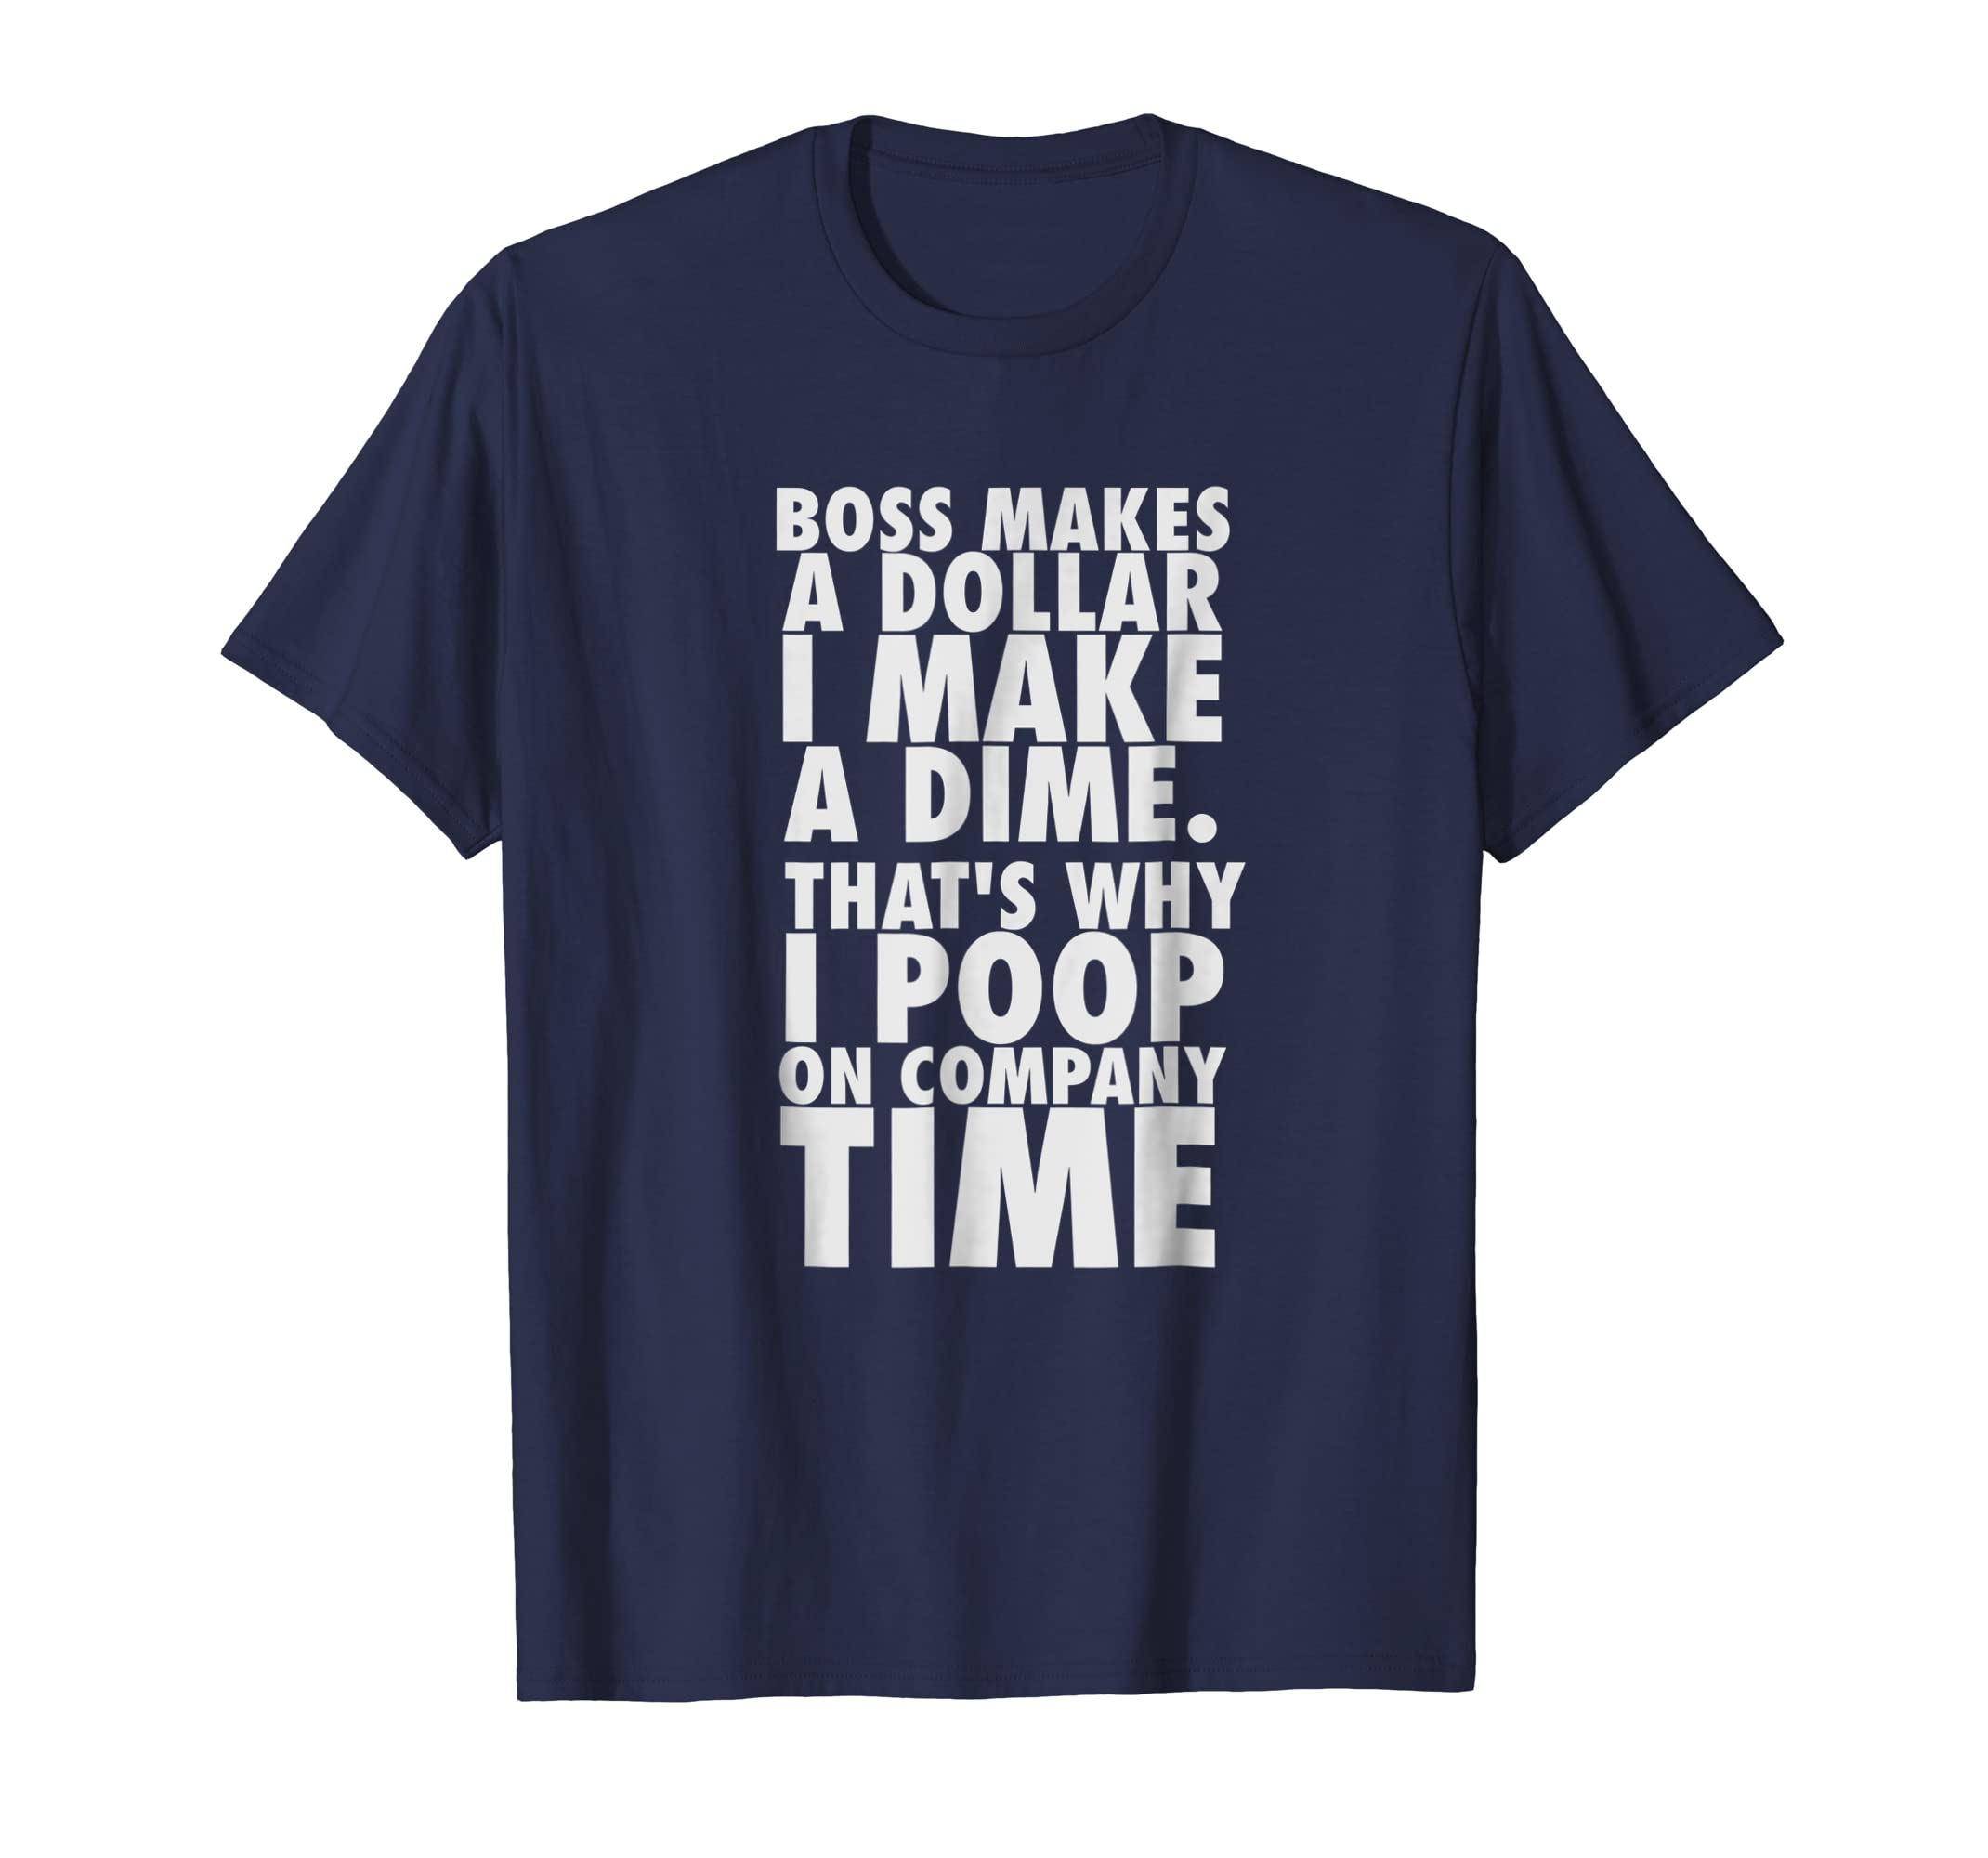 7071fb57c Amazon.com: Boss makes a dollar, I make a dime. T-shirt: Clothing